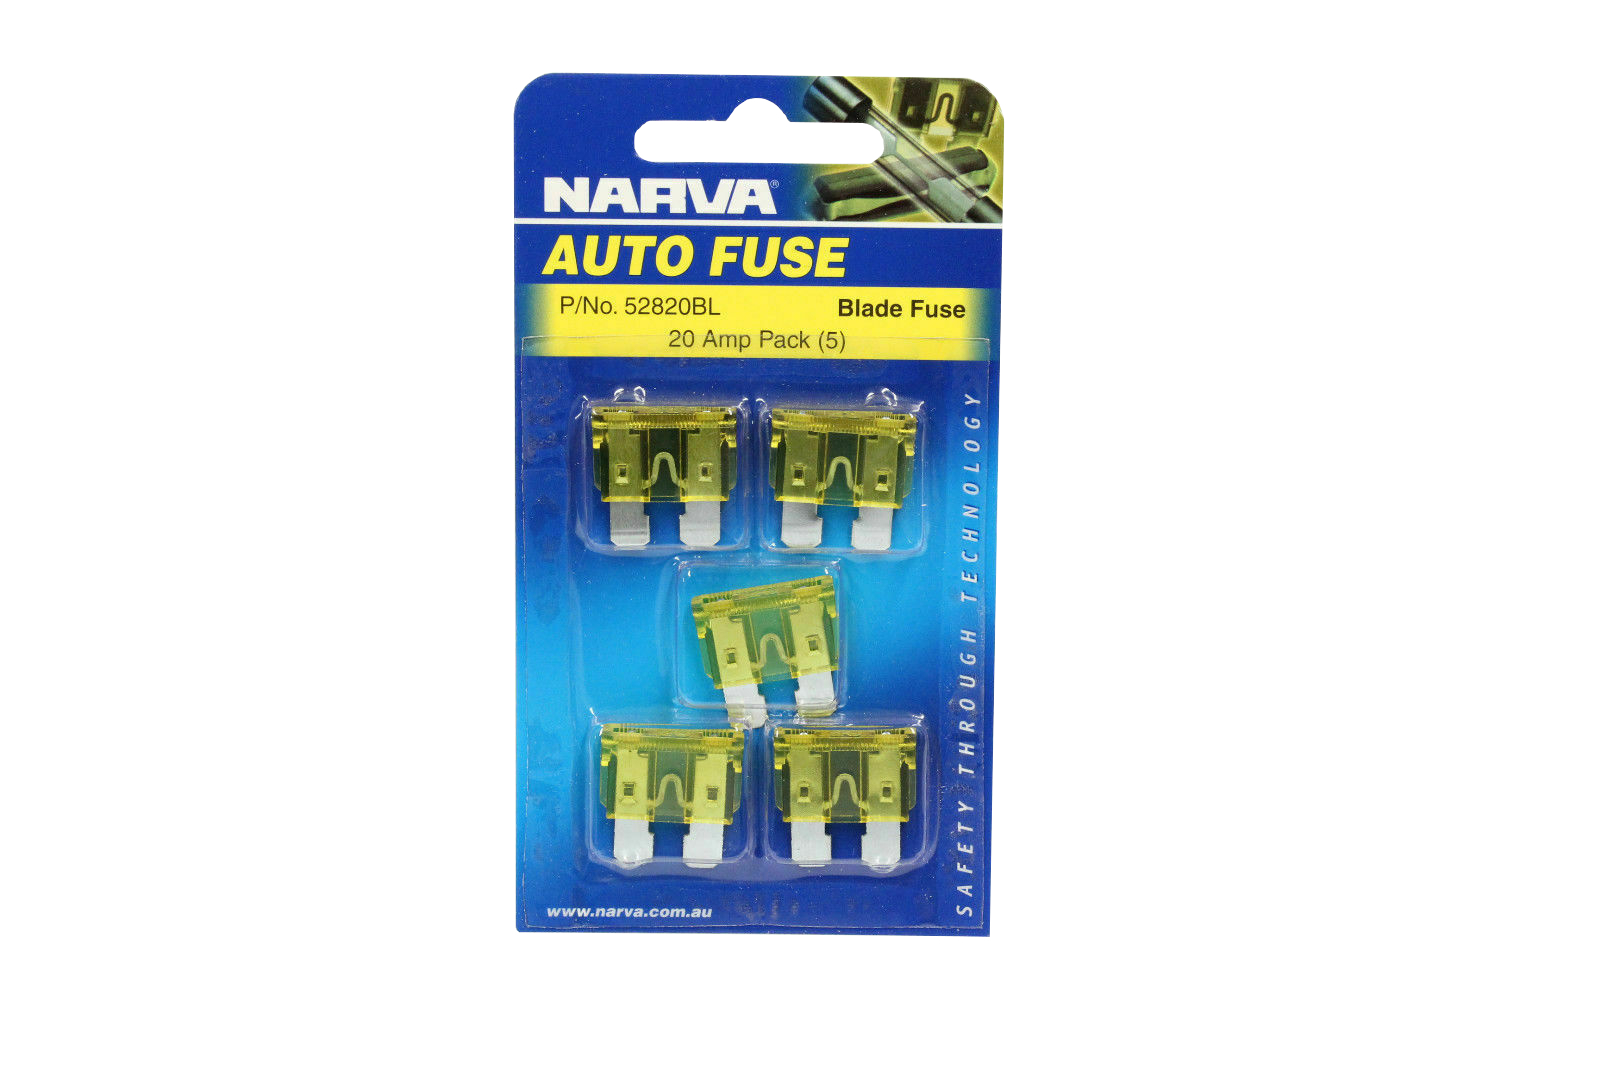 56156 NARVA TERMINALS CABLE JOINER INSULATED WIRE 4mm BLUE PACK OF 100